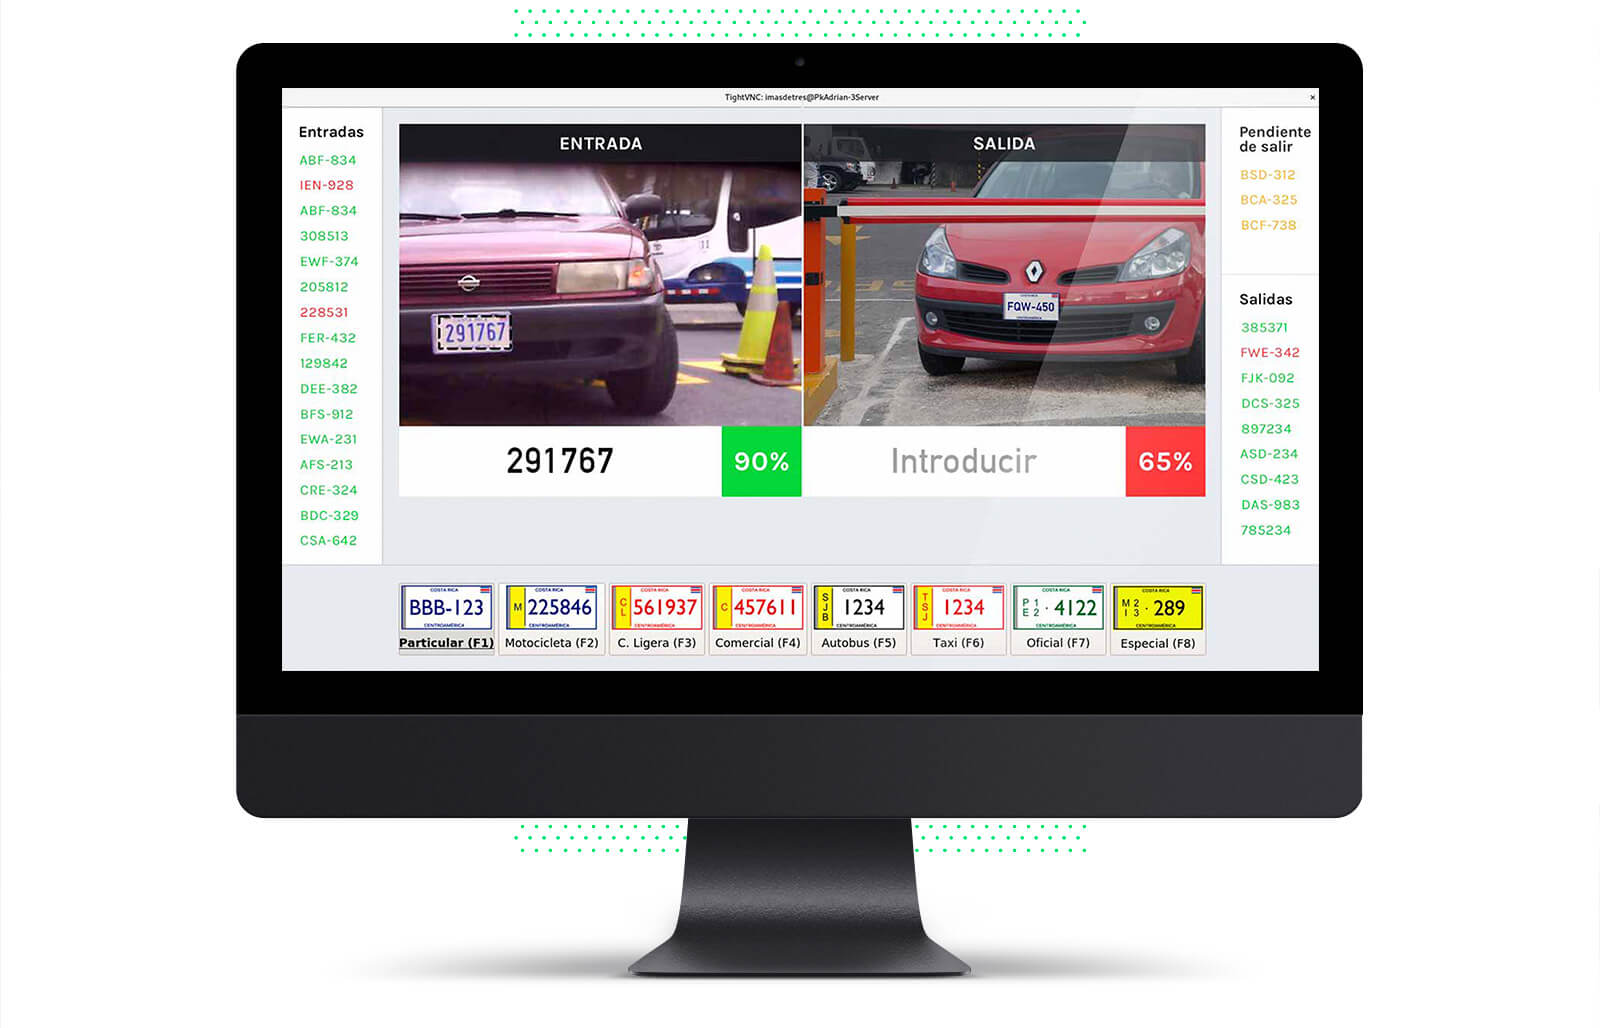 3LPR License Plate Recognition System